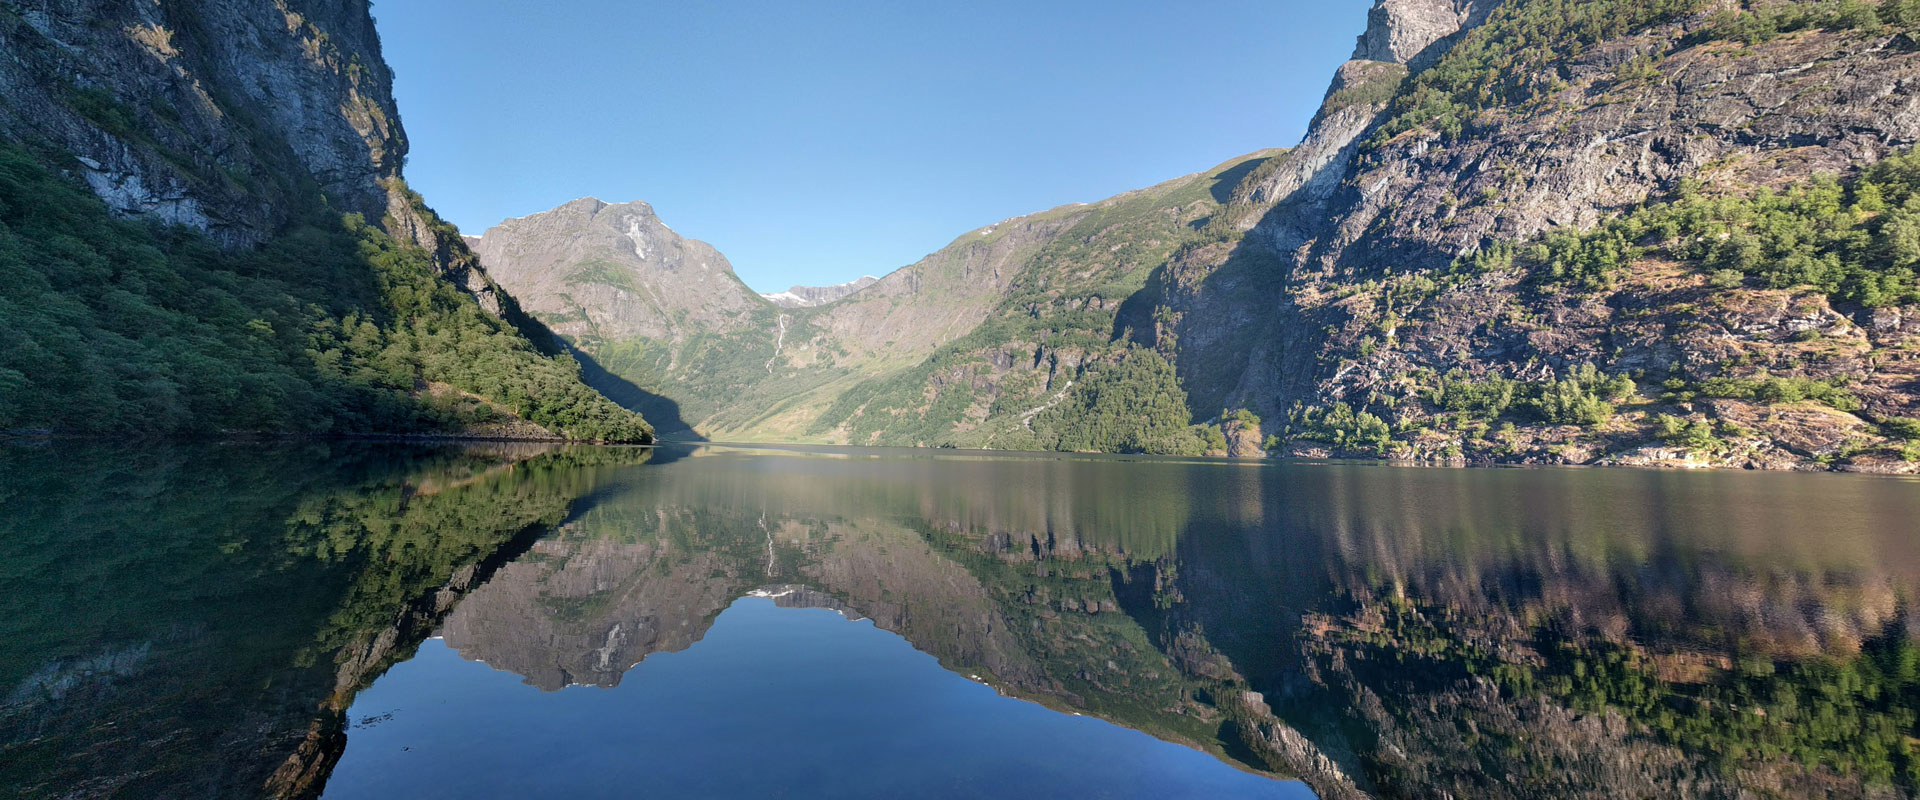 Norwegian mountains reflected in the water of the fjords